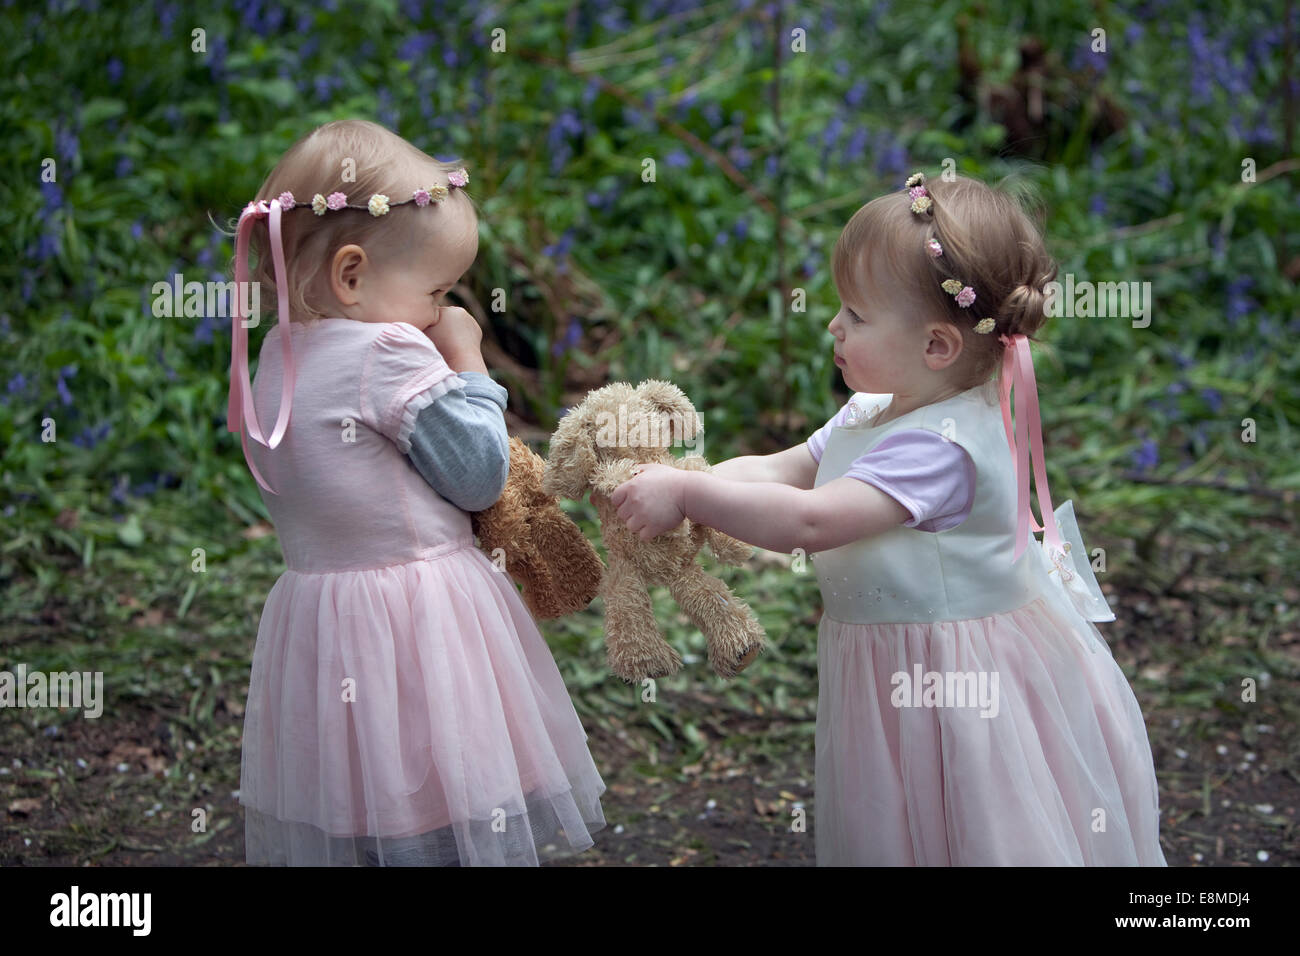 Two toddlers outdoors learning the concept of sharing toys. - Stock Image